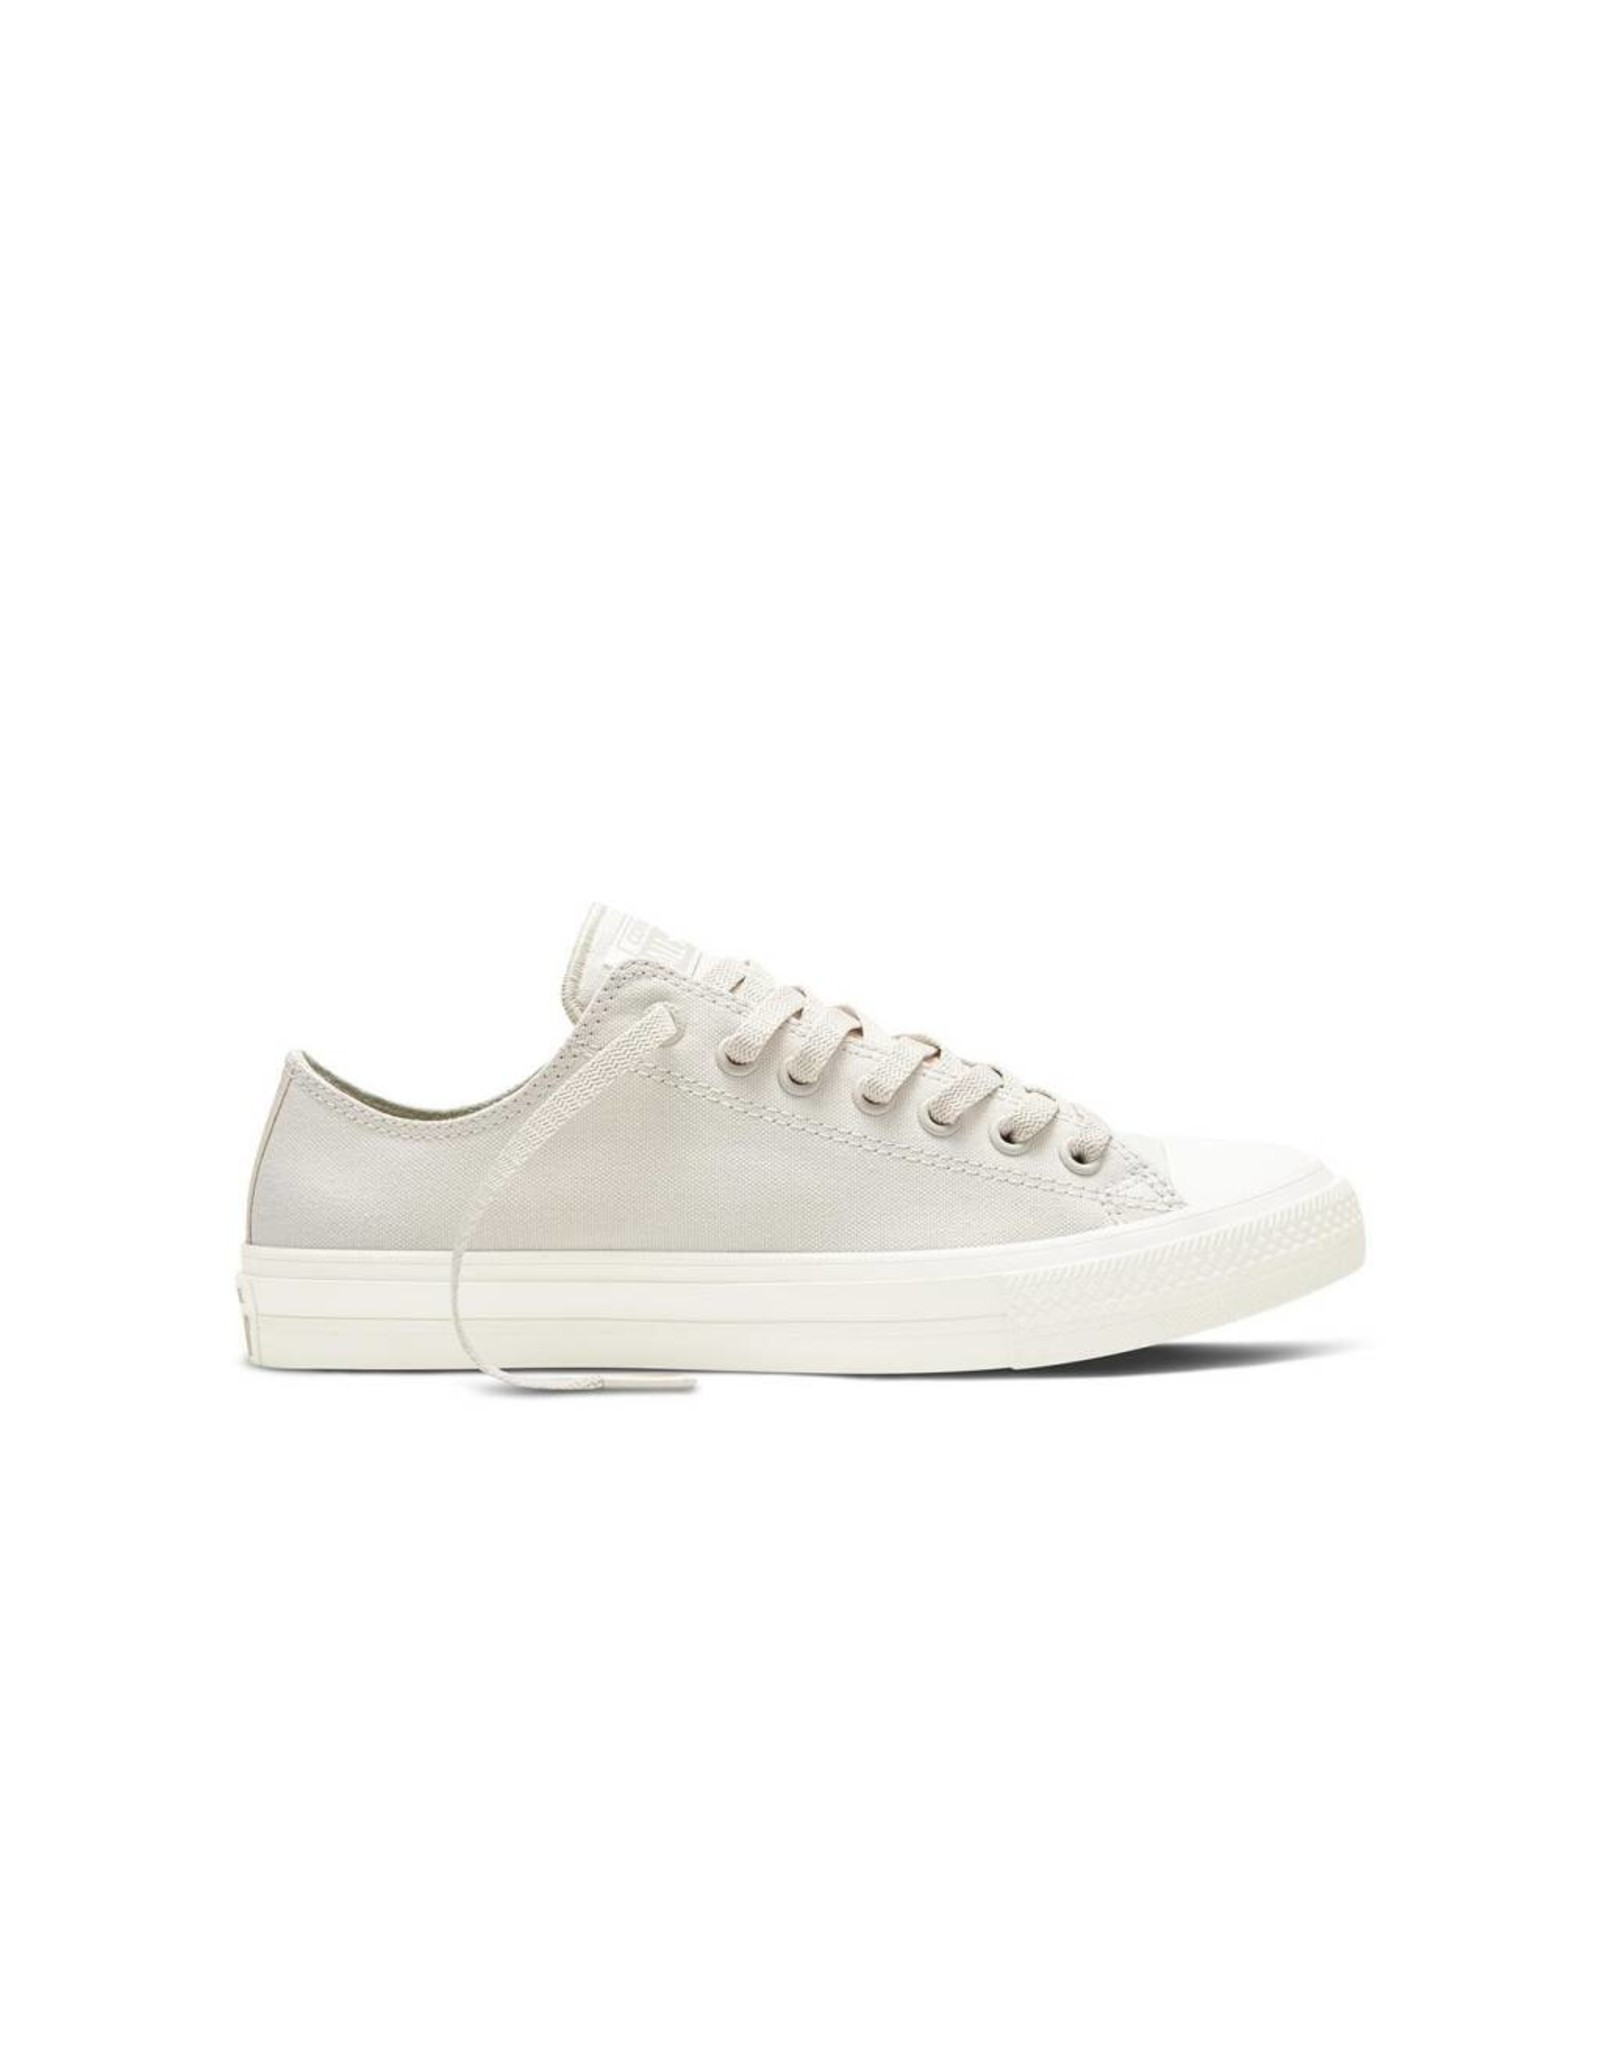 CONVERSE Chuck Taylor All Star  II OX PARCHMENT NAVY WHITE CT2LPA-151224C